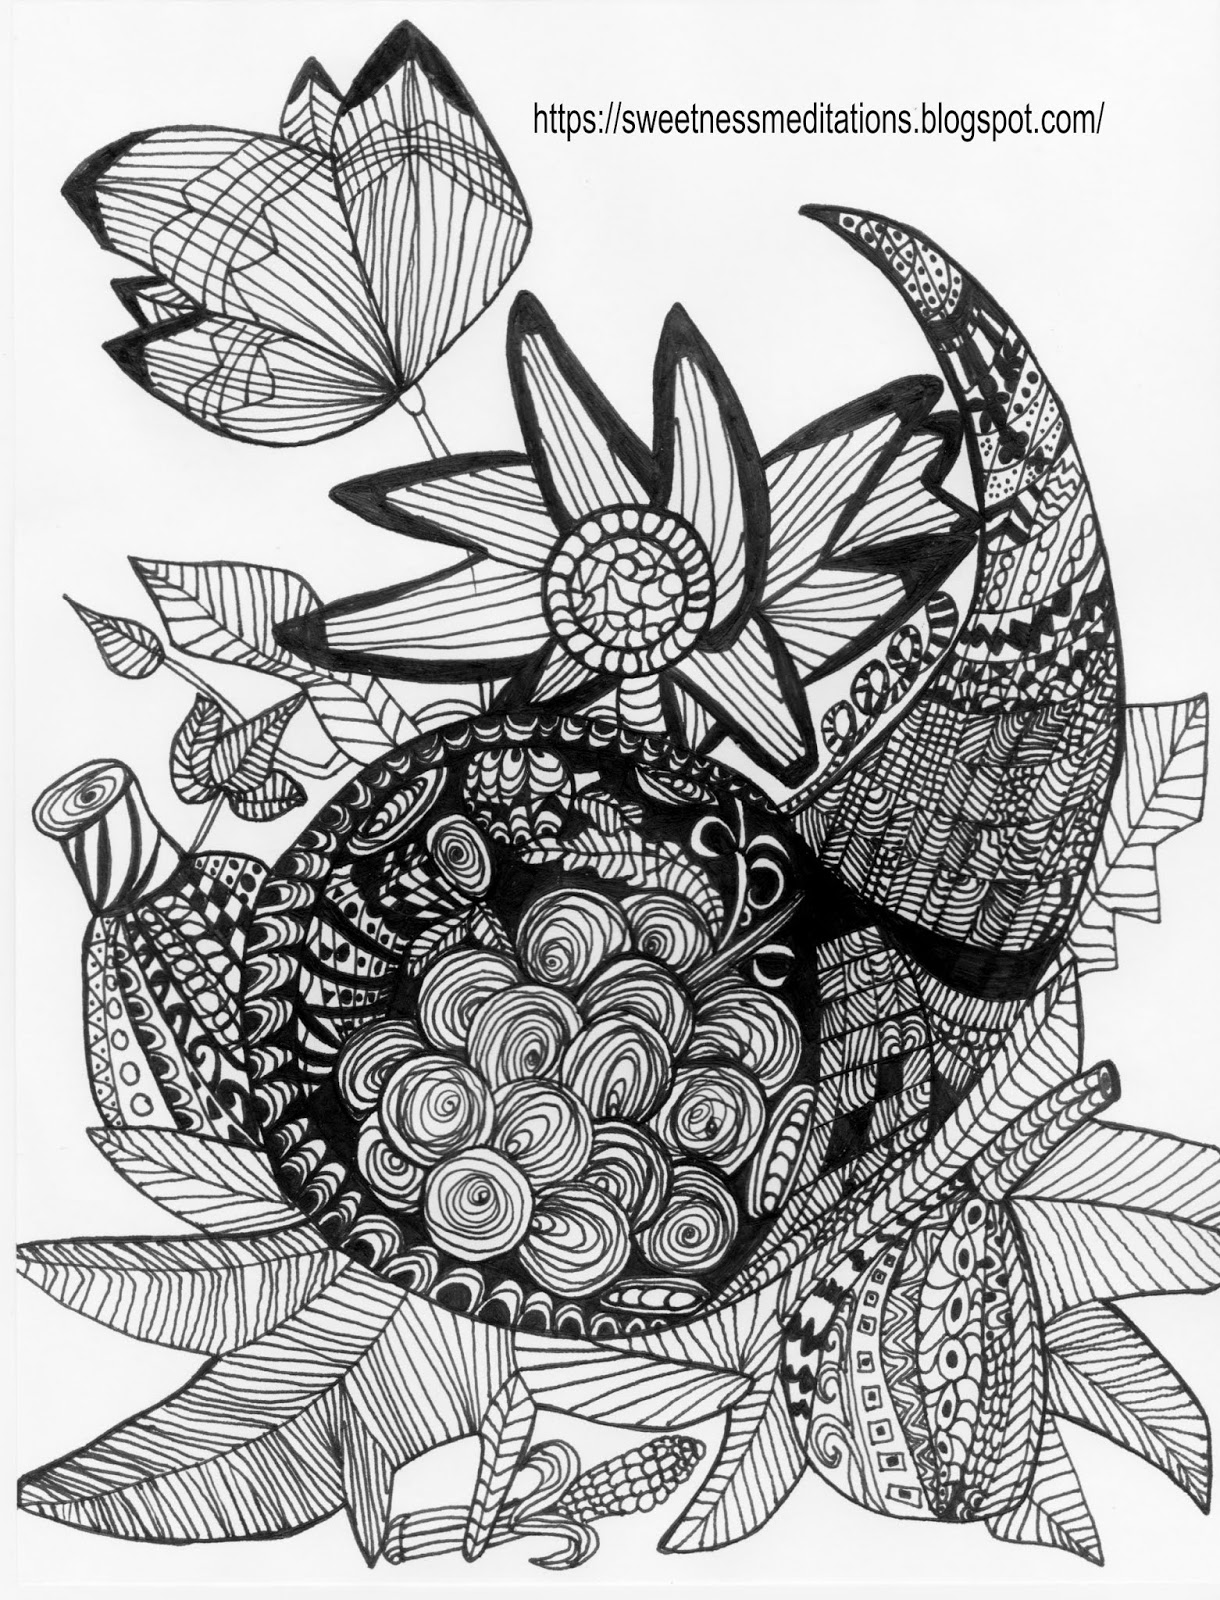 picture of cornucopia to color free printable cornucopia coloring pages coloring home to picture color of cornucopia